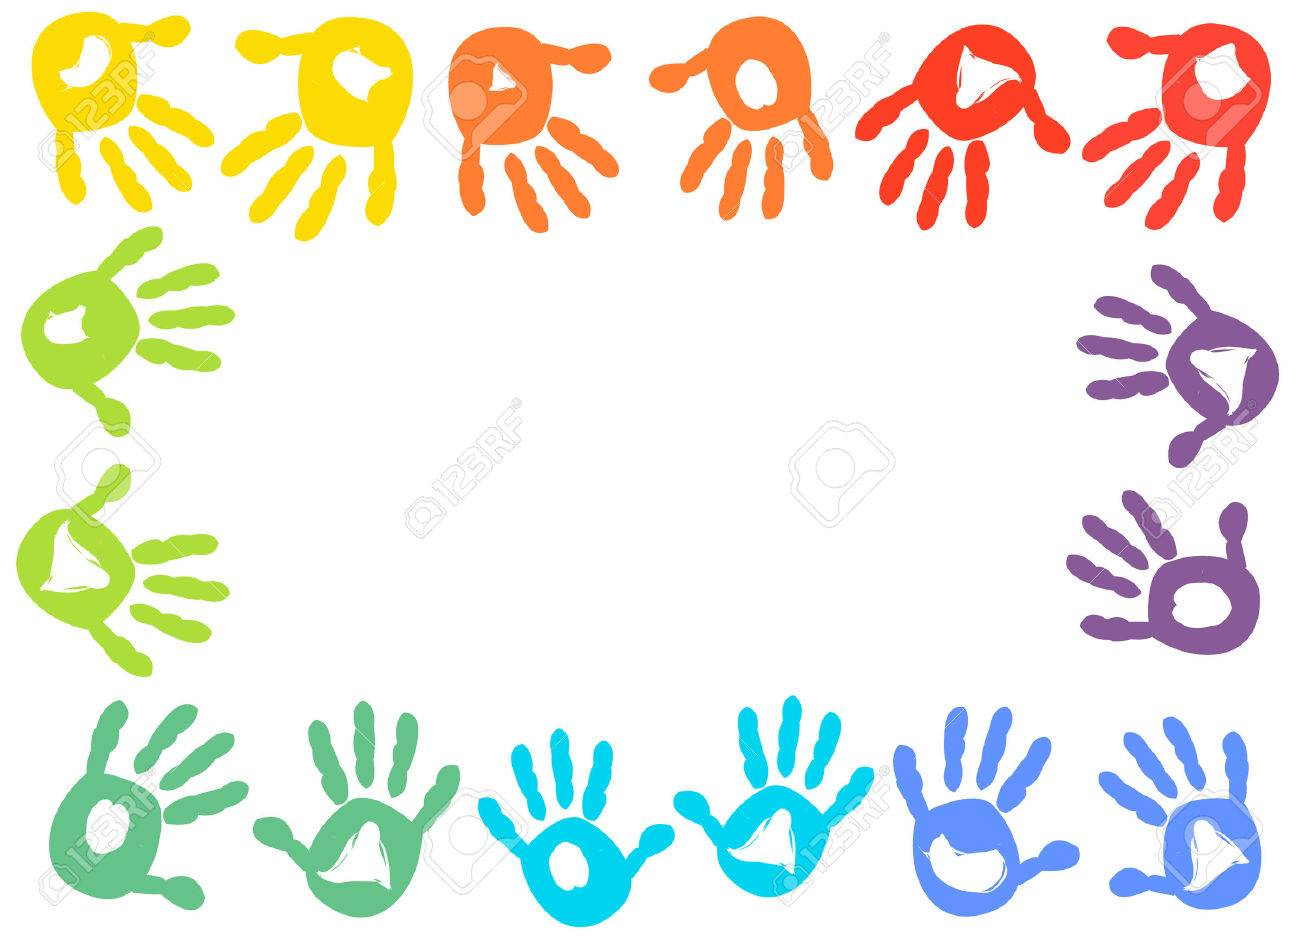 Colorful Kids Handprint Frame Vector Background Royalty Free ...